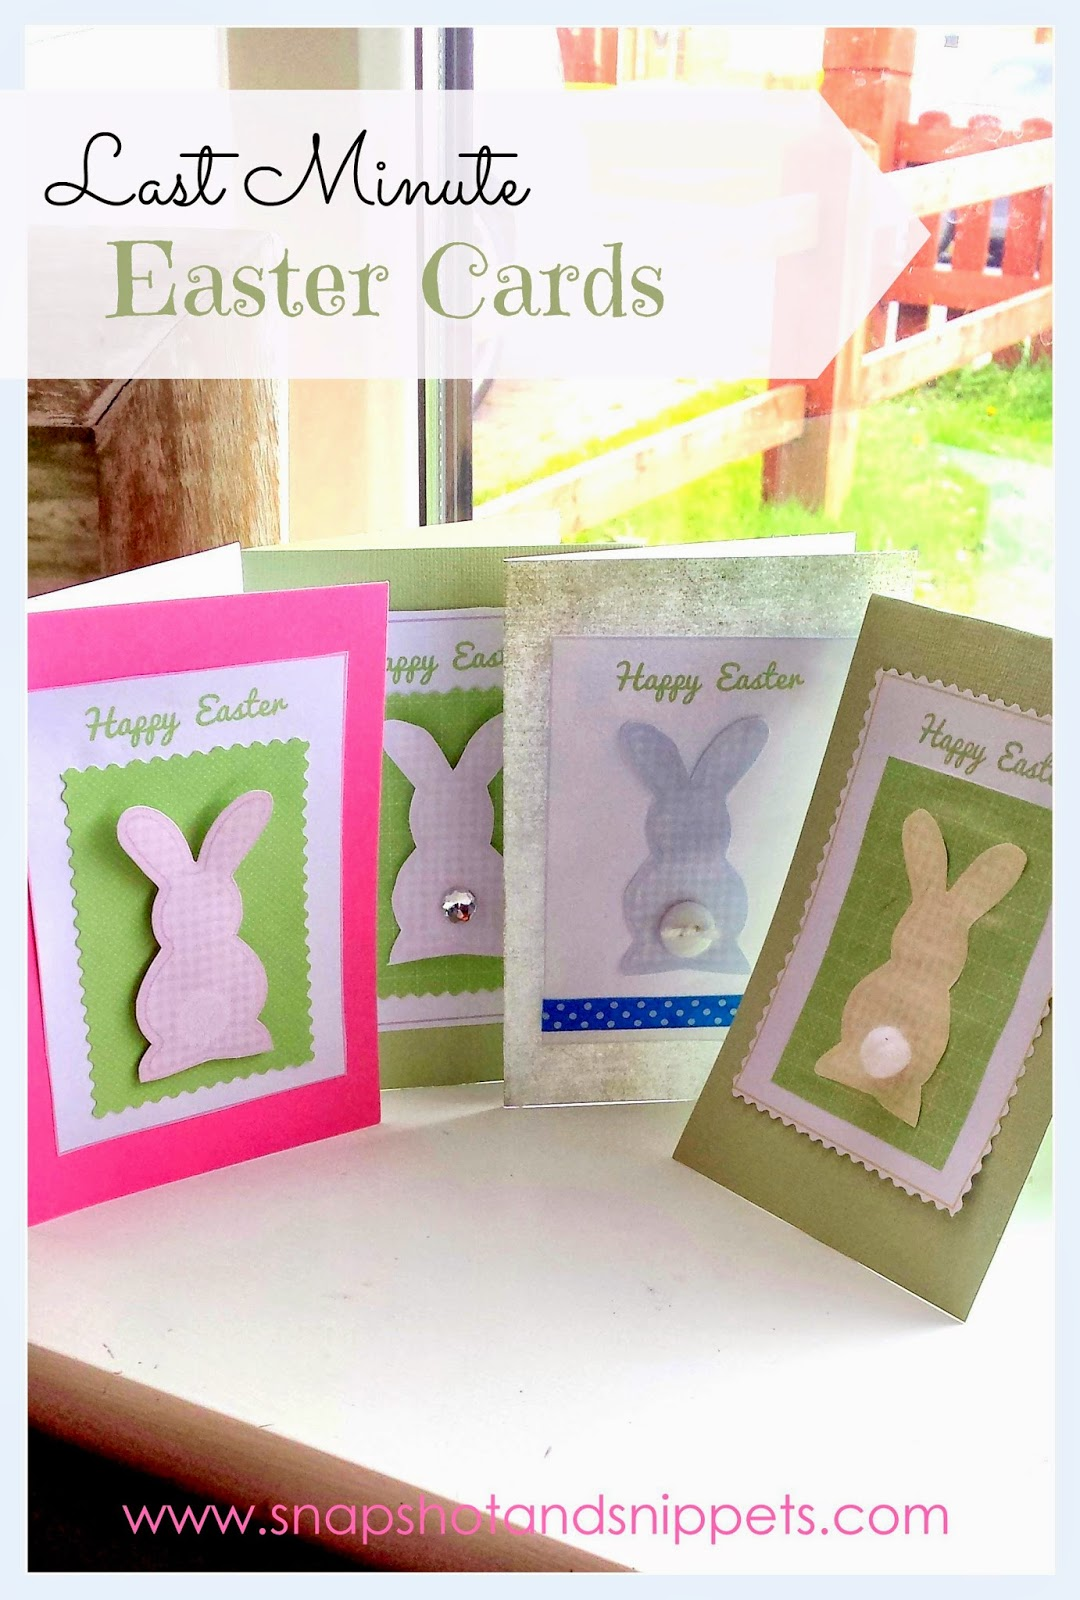 Last Minute Easter Card And Easter Craft Round Up Snapshots And